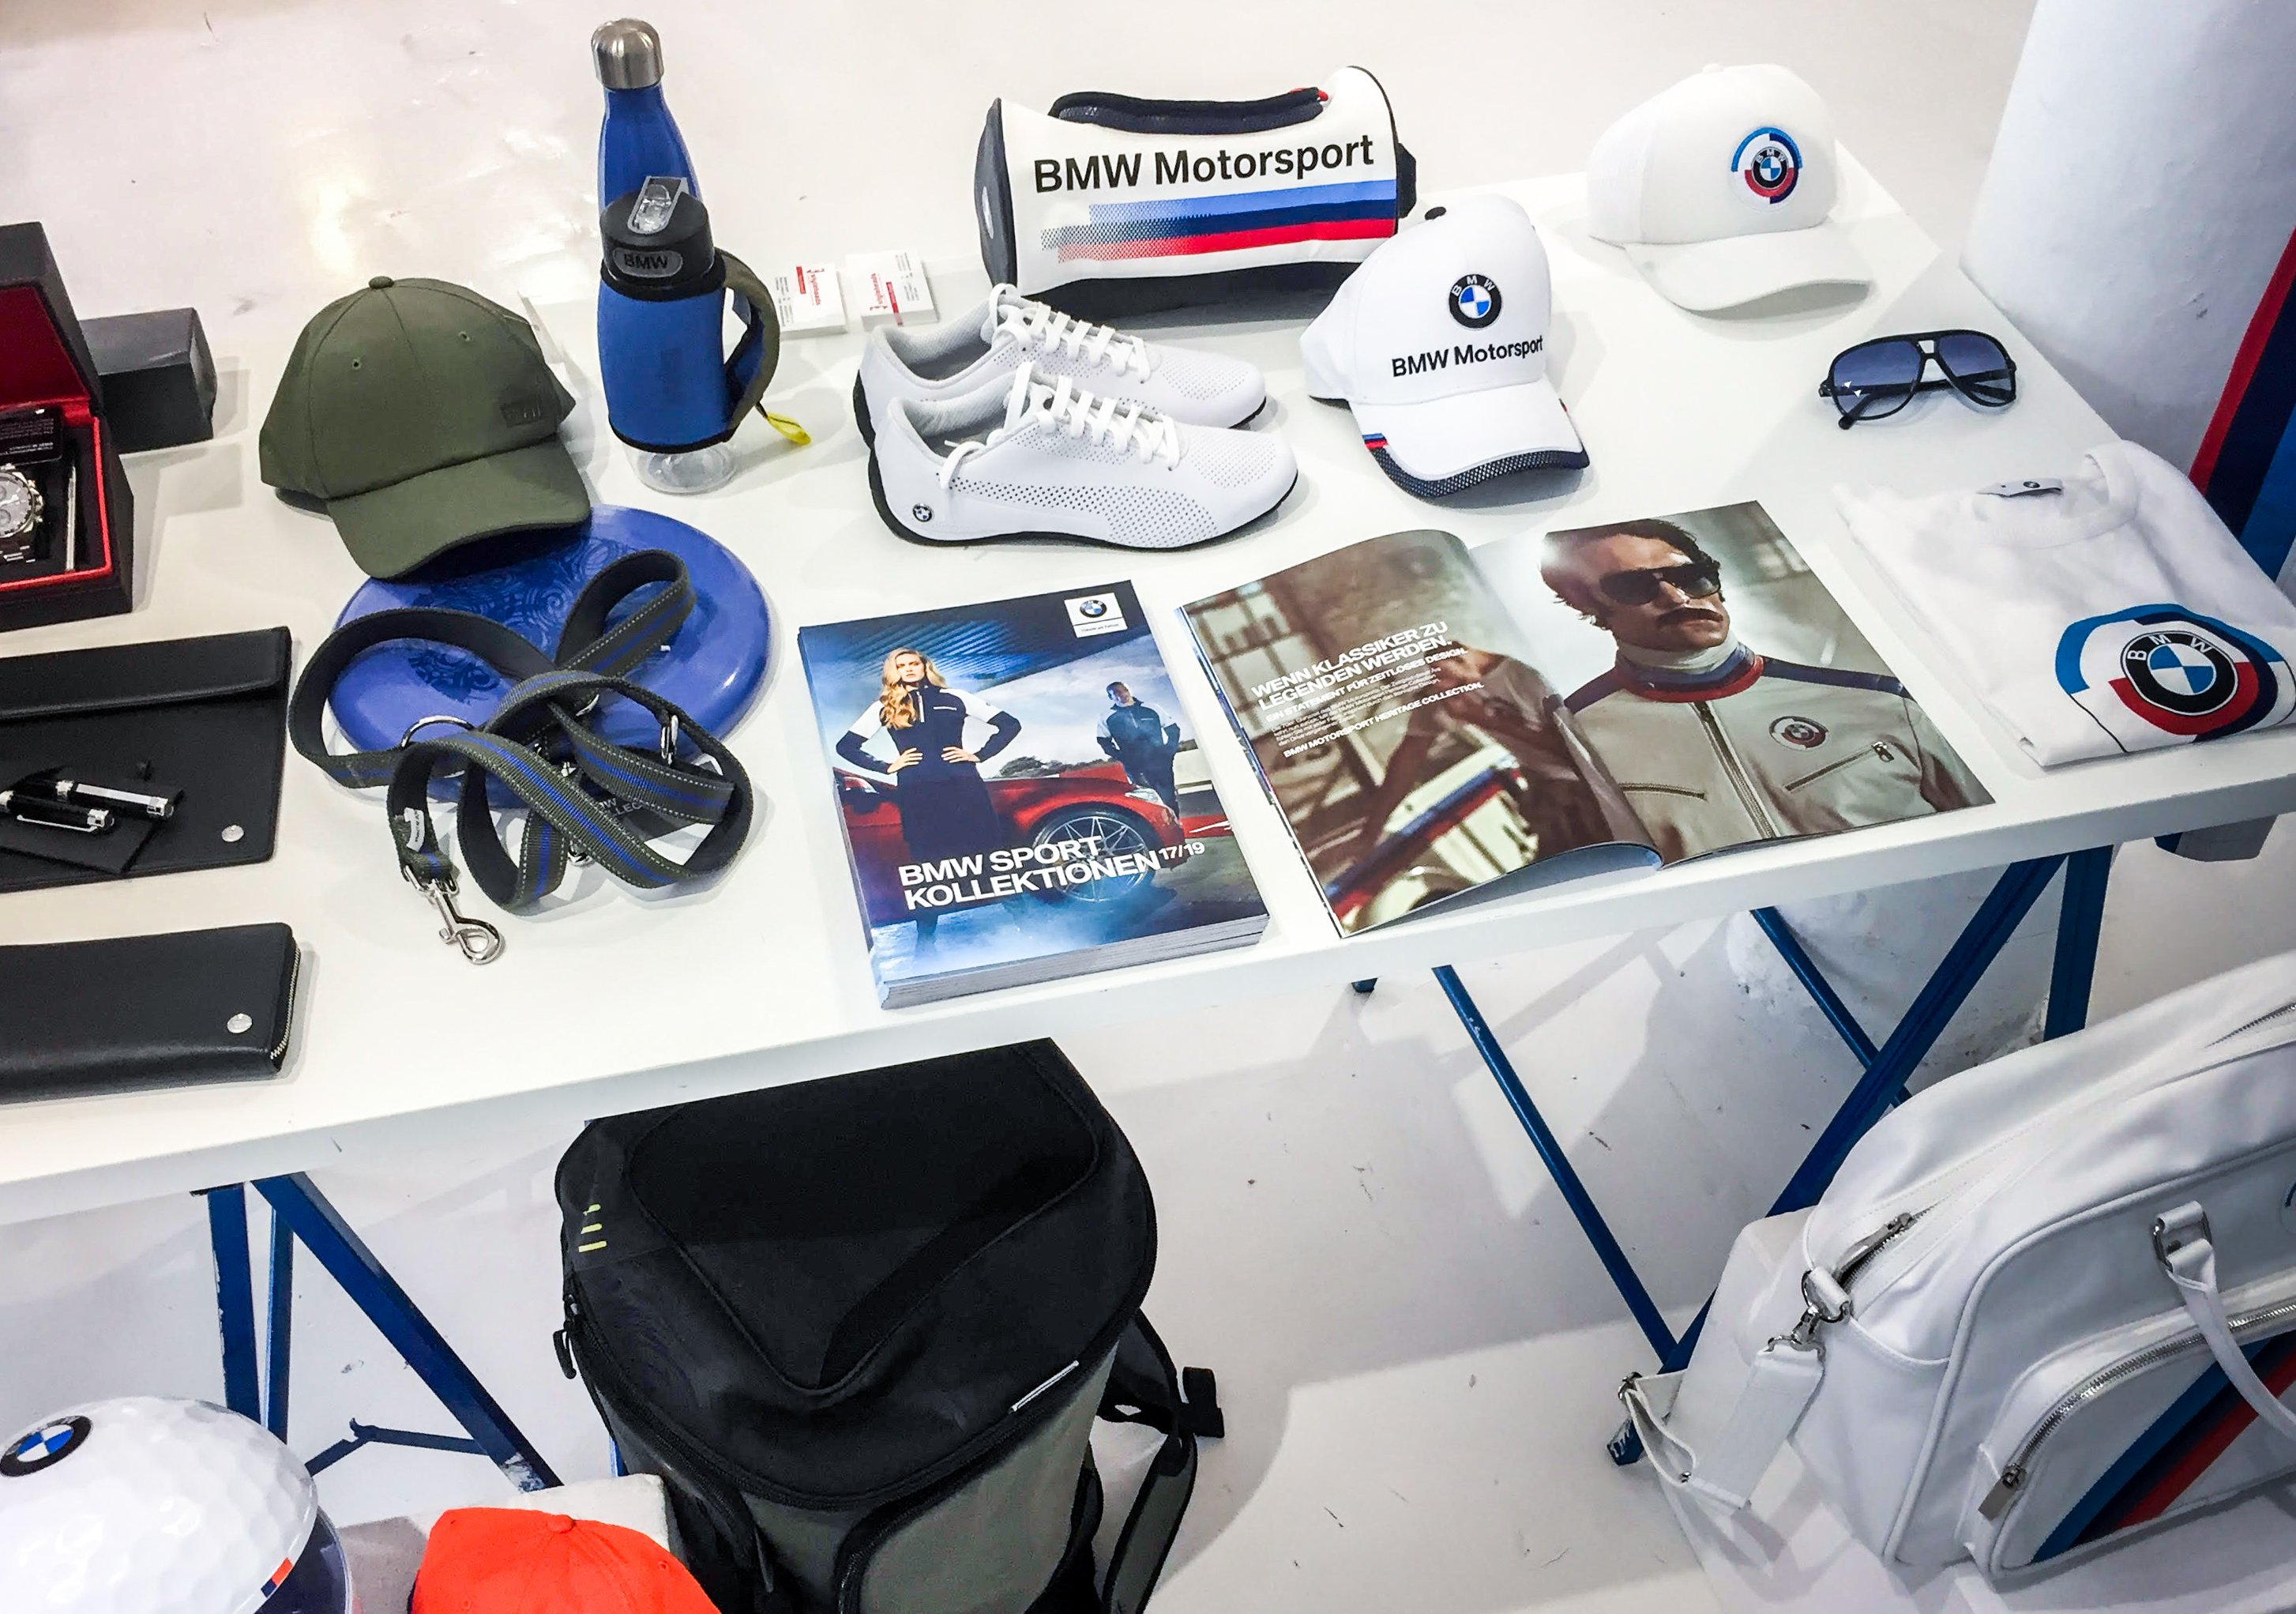 Weekly Review - was in den letzten zwei Wochen passierte MINI BMW Neostrata Pflege Mode Fashion Lifestyle Automobile PepperAndGold Jennifer Cosmetics Kosmetik Event BMWMotorsport